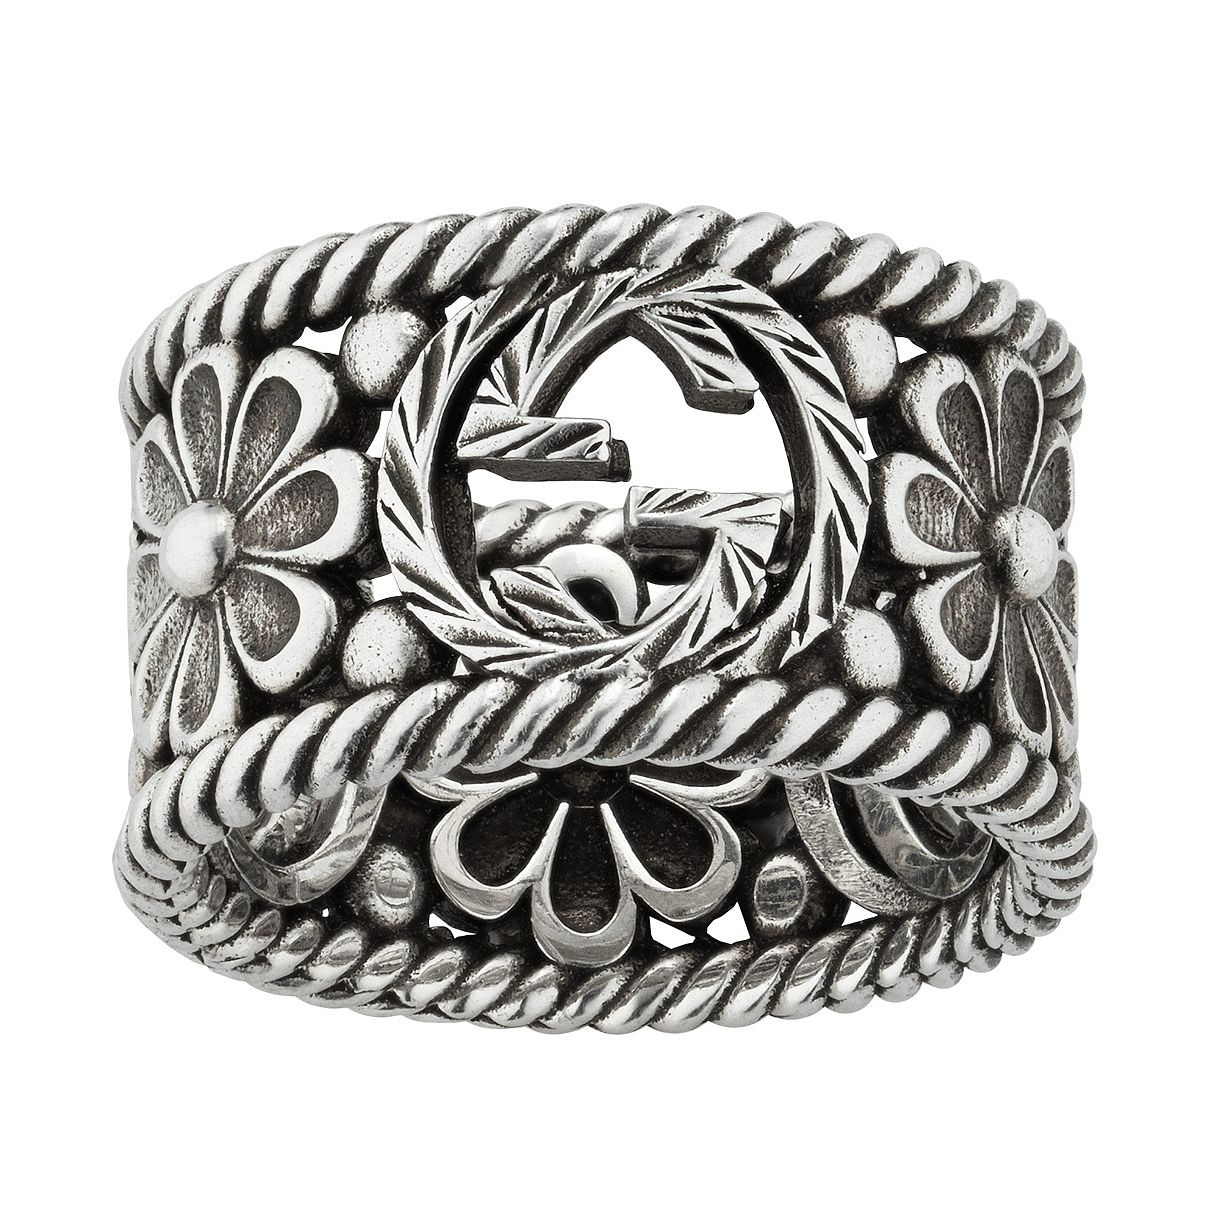 Gucci Interlocking G Flower Ring - Size N - Product number 5254779